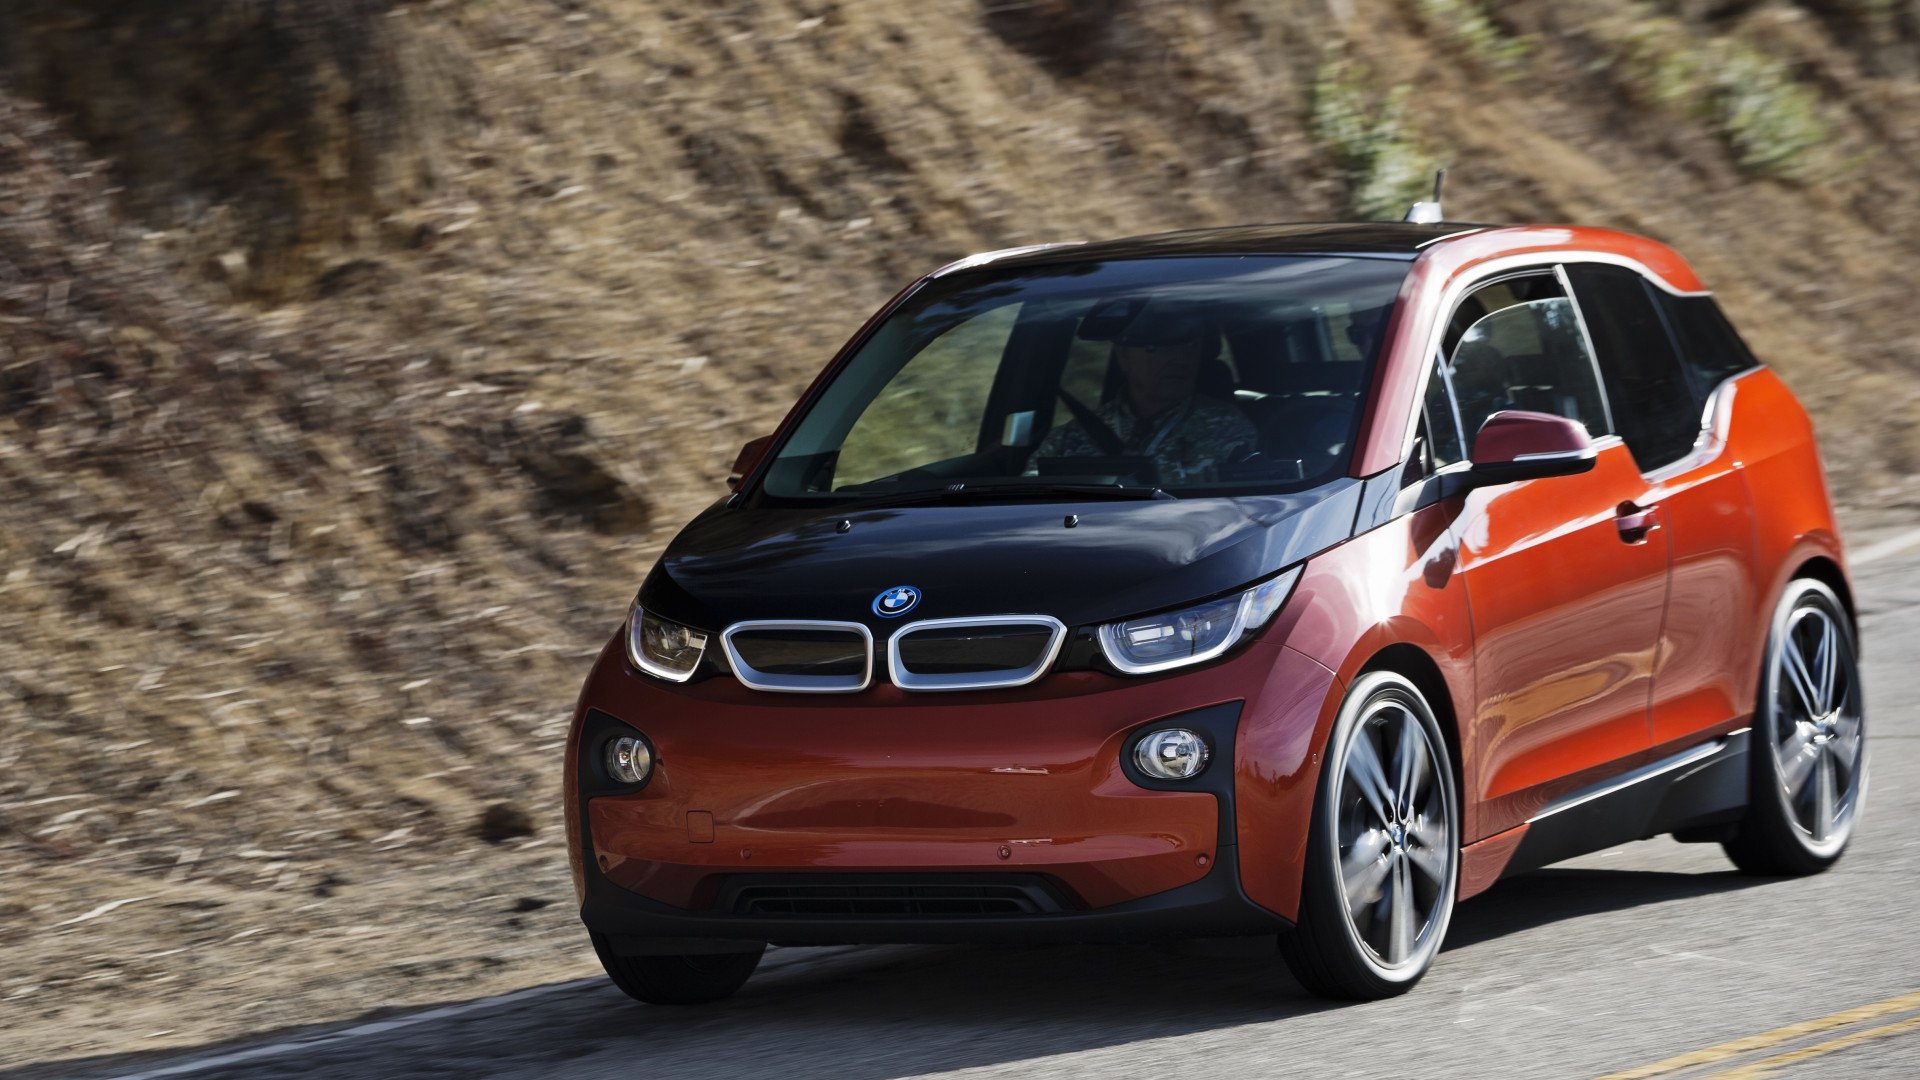 BMW i3, hybrid, REx, MCV, carbon, city car, BMW, Project I, road, red (horizontal)